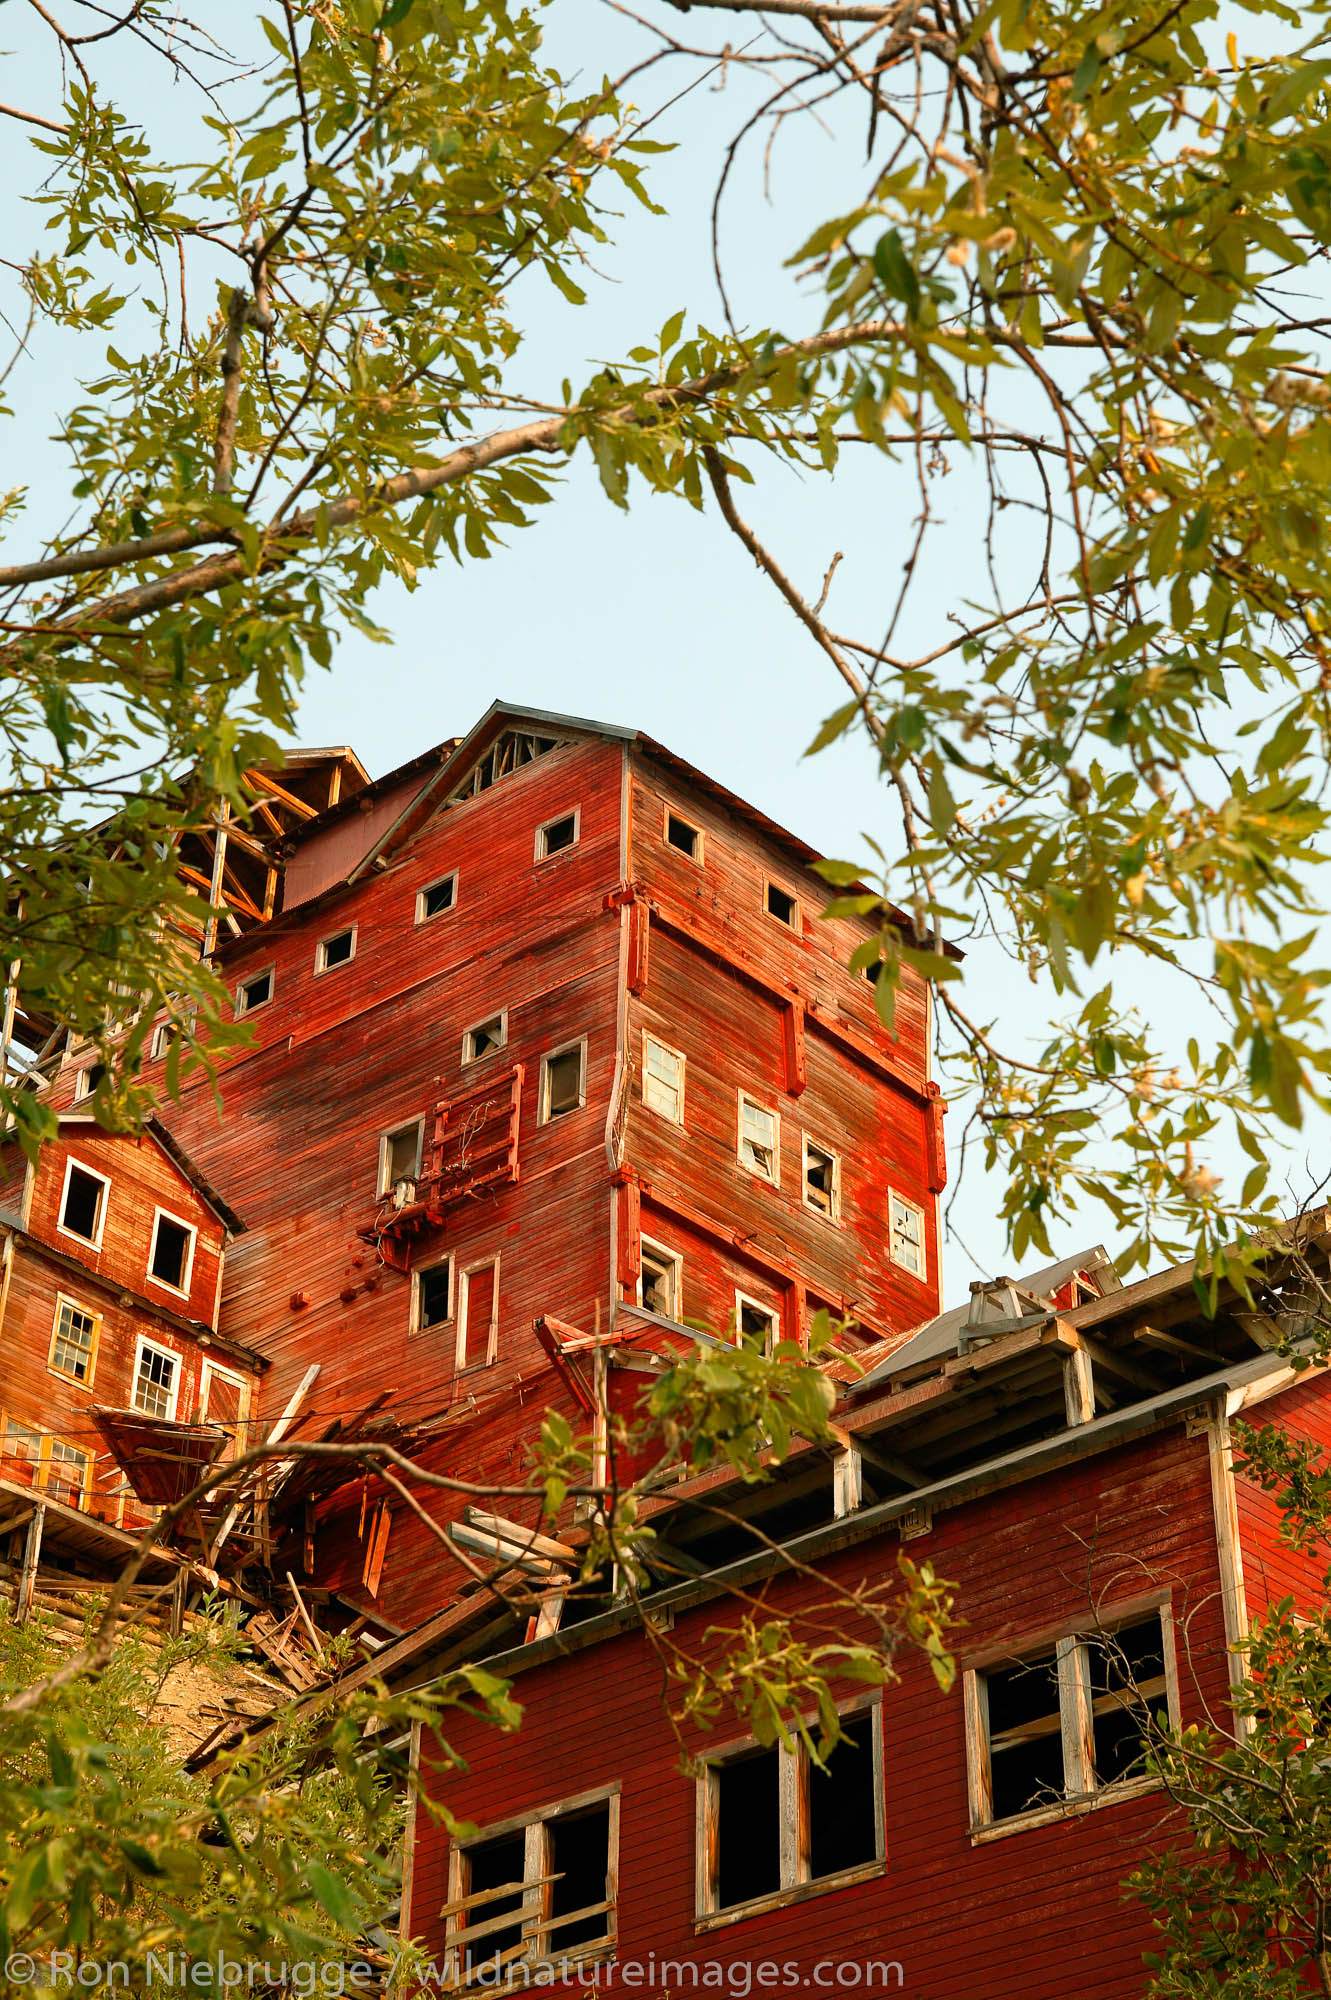 The historic Kennicott Mill built in 1907 by the Kennecott Copper Corporation near McCarthy, Wrangell-St. Elias National Park...